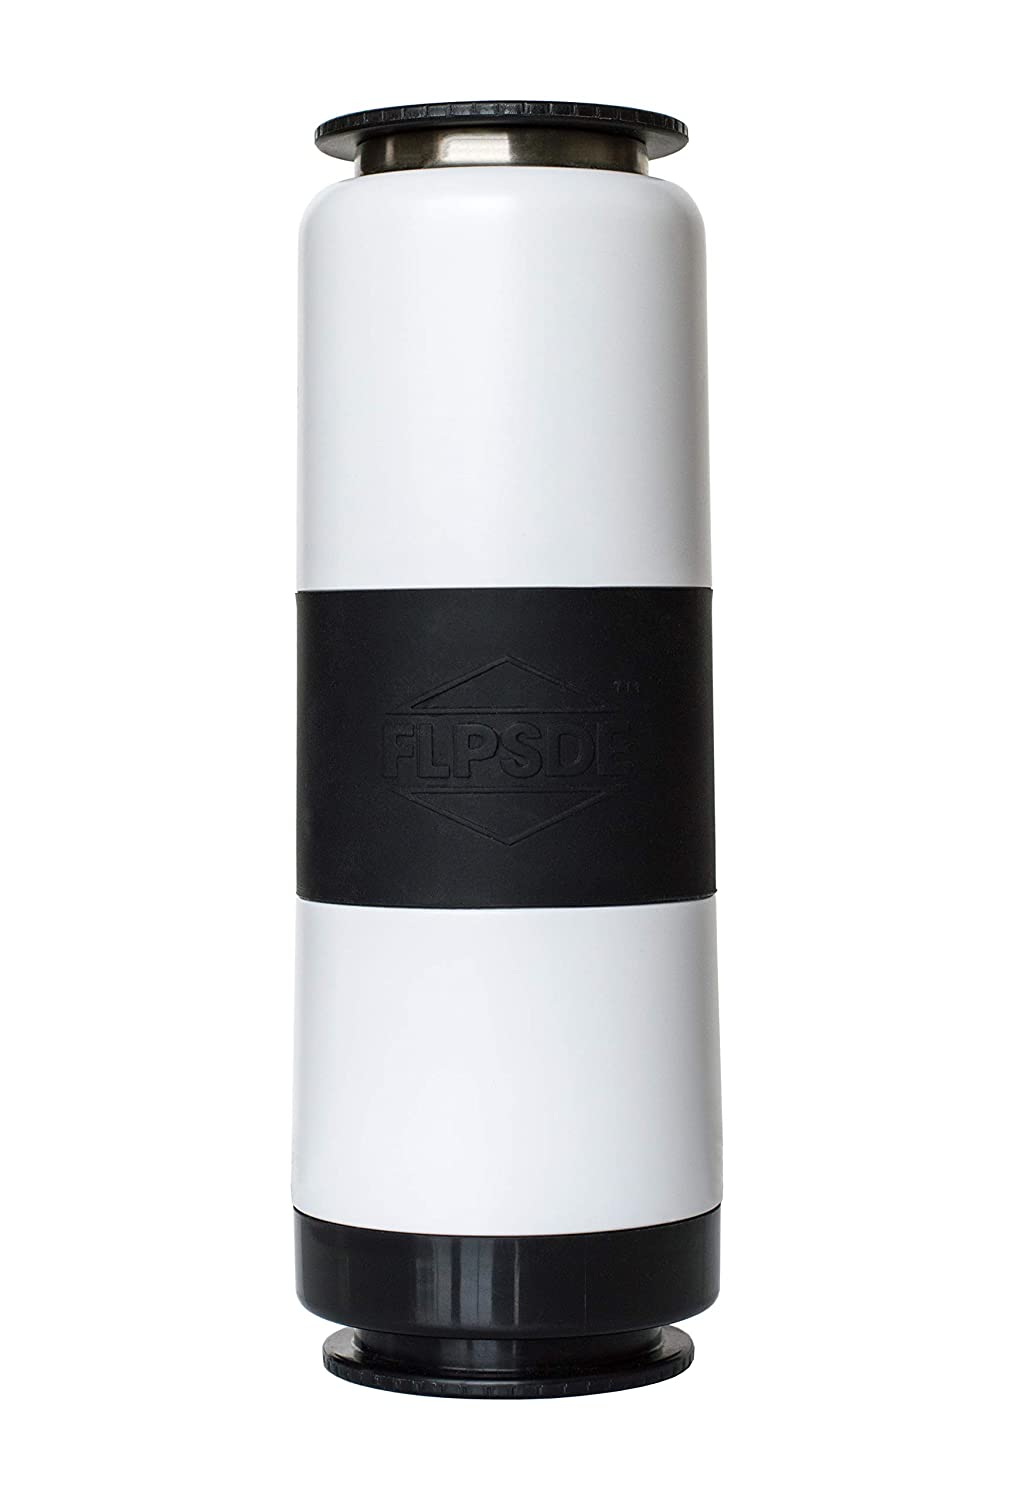 Vacuum Insulated Stainless Steel Drink+Snack FLPSDE Dual Chamber Water Bottle